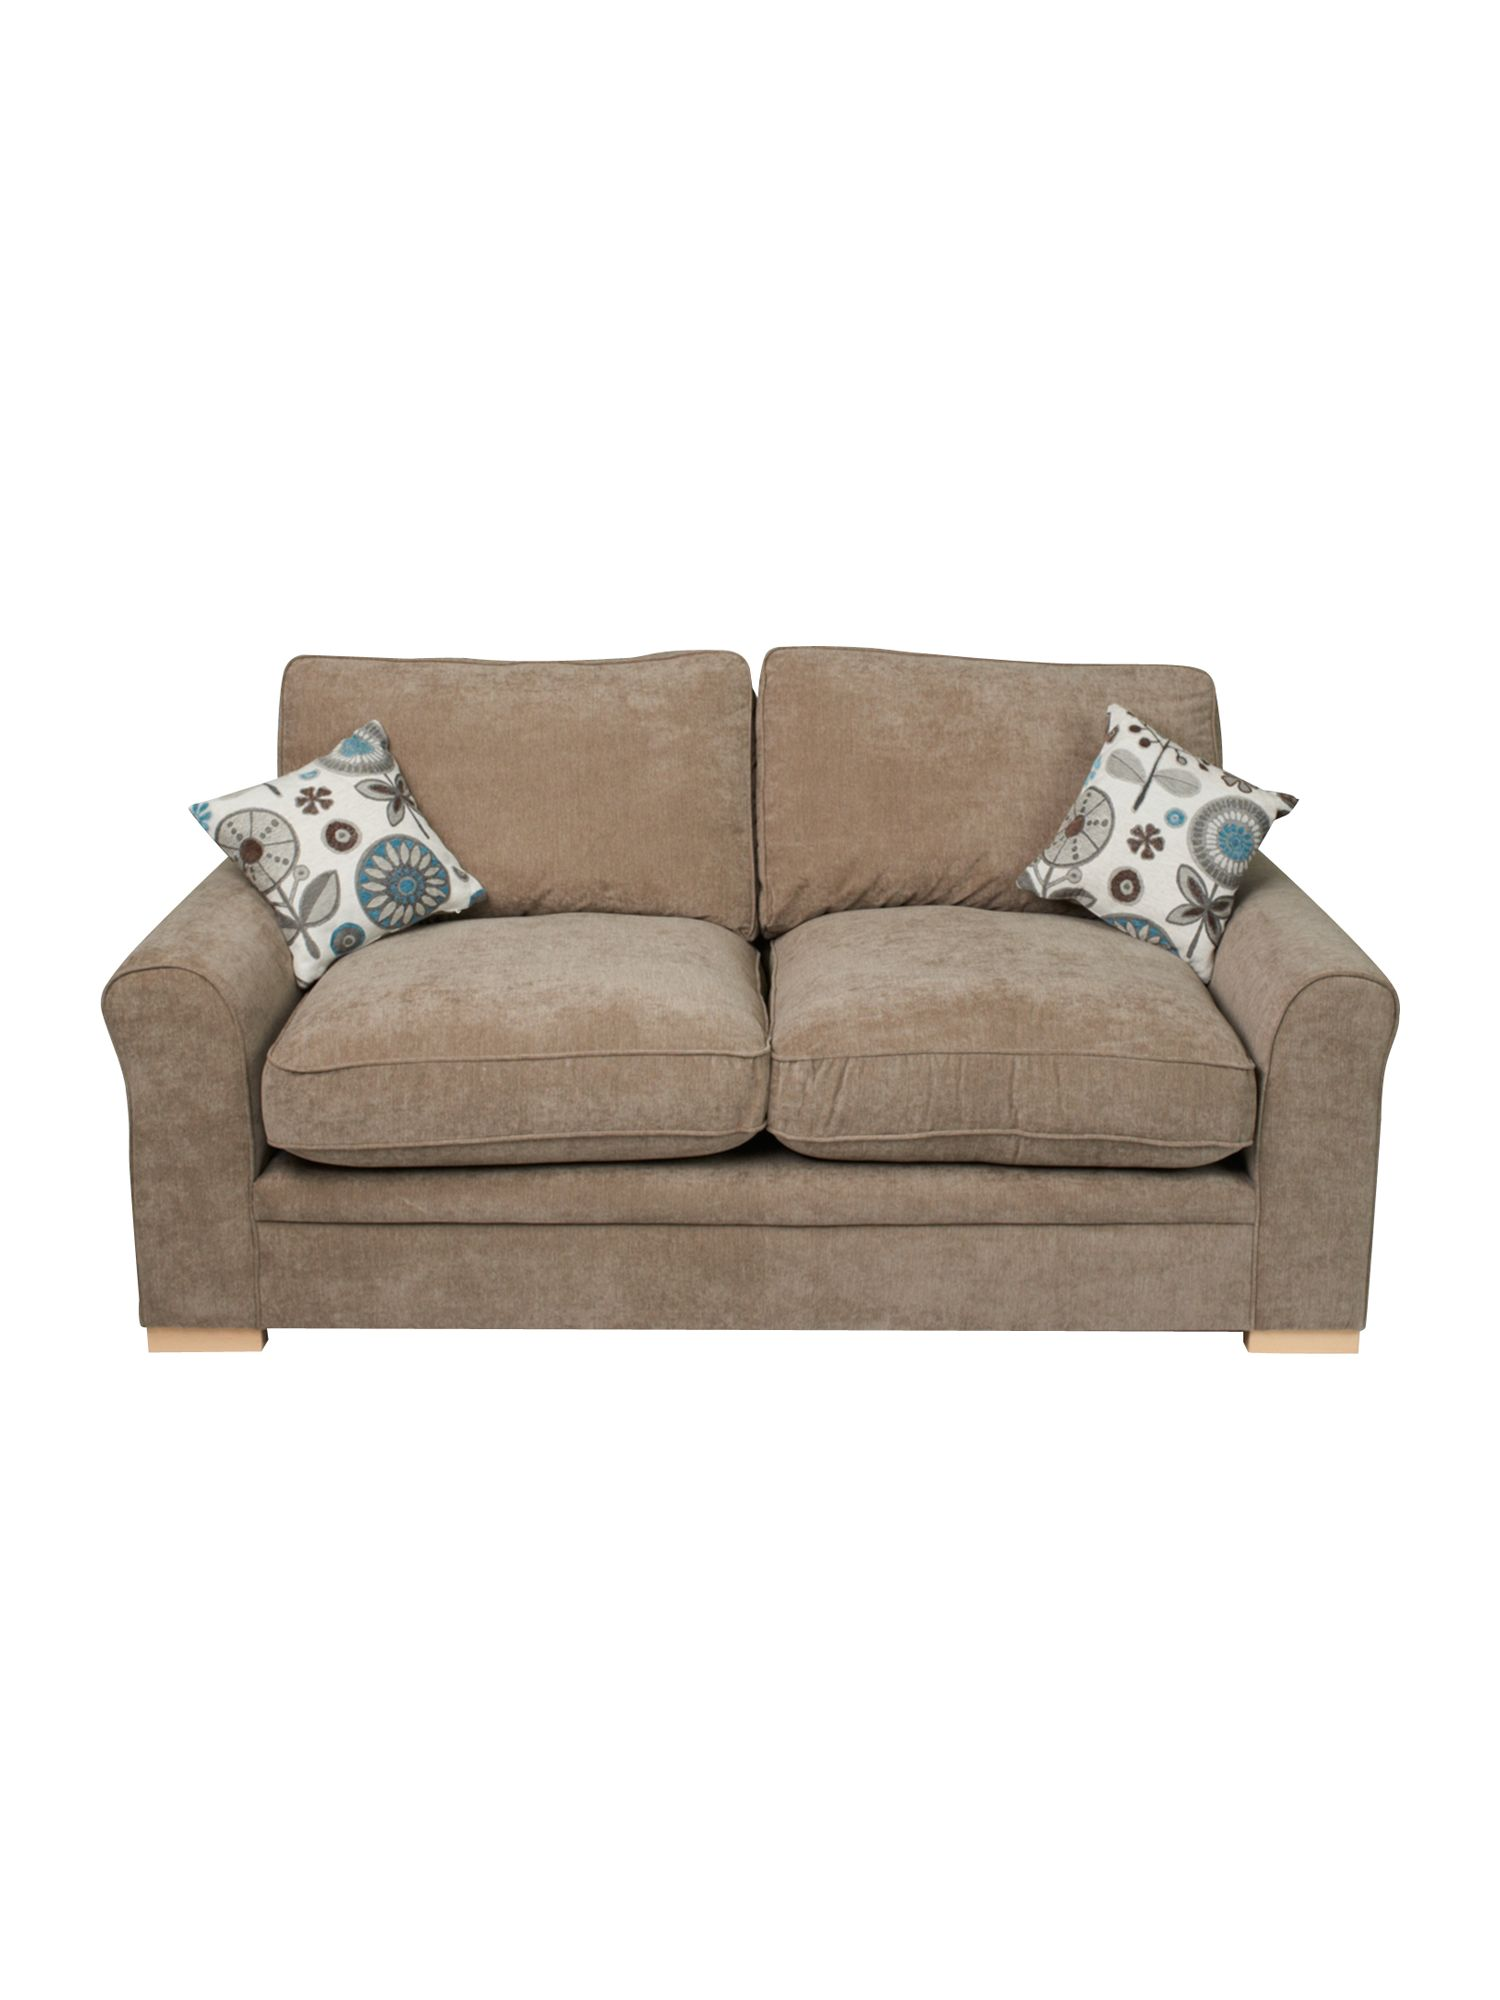 Esher living room furniture range